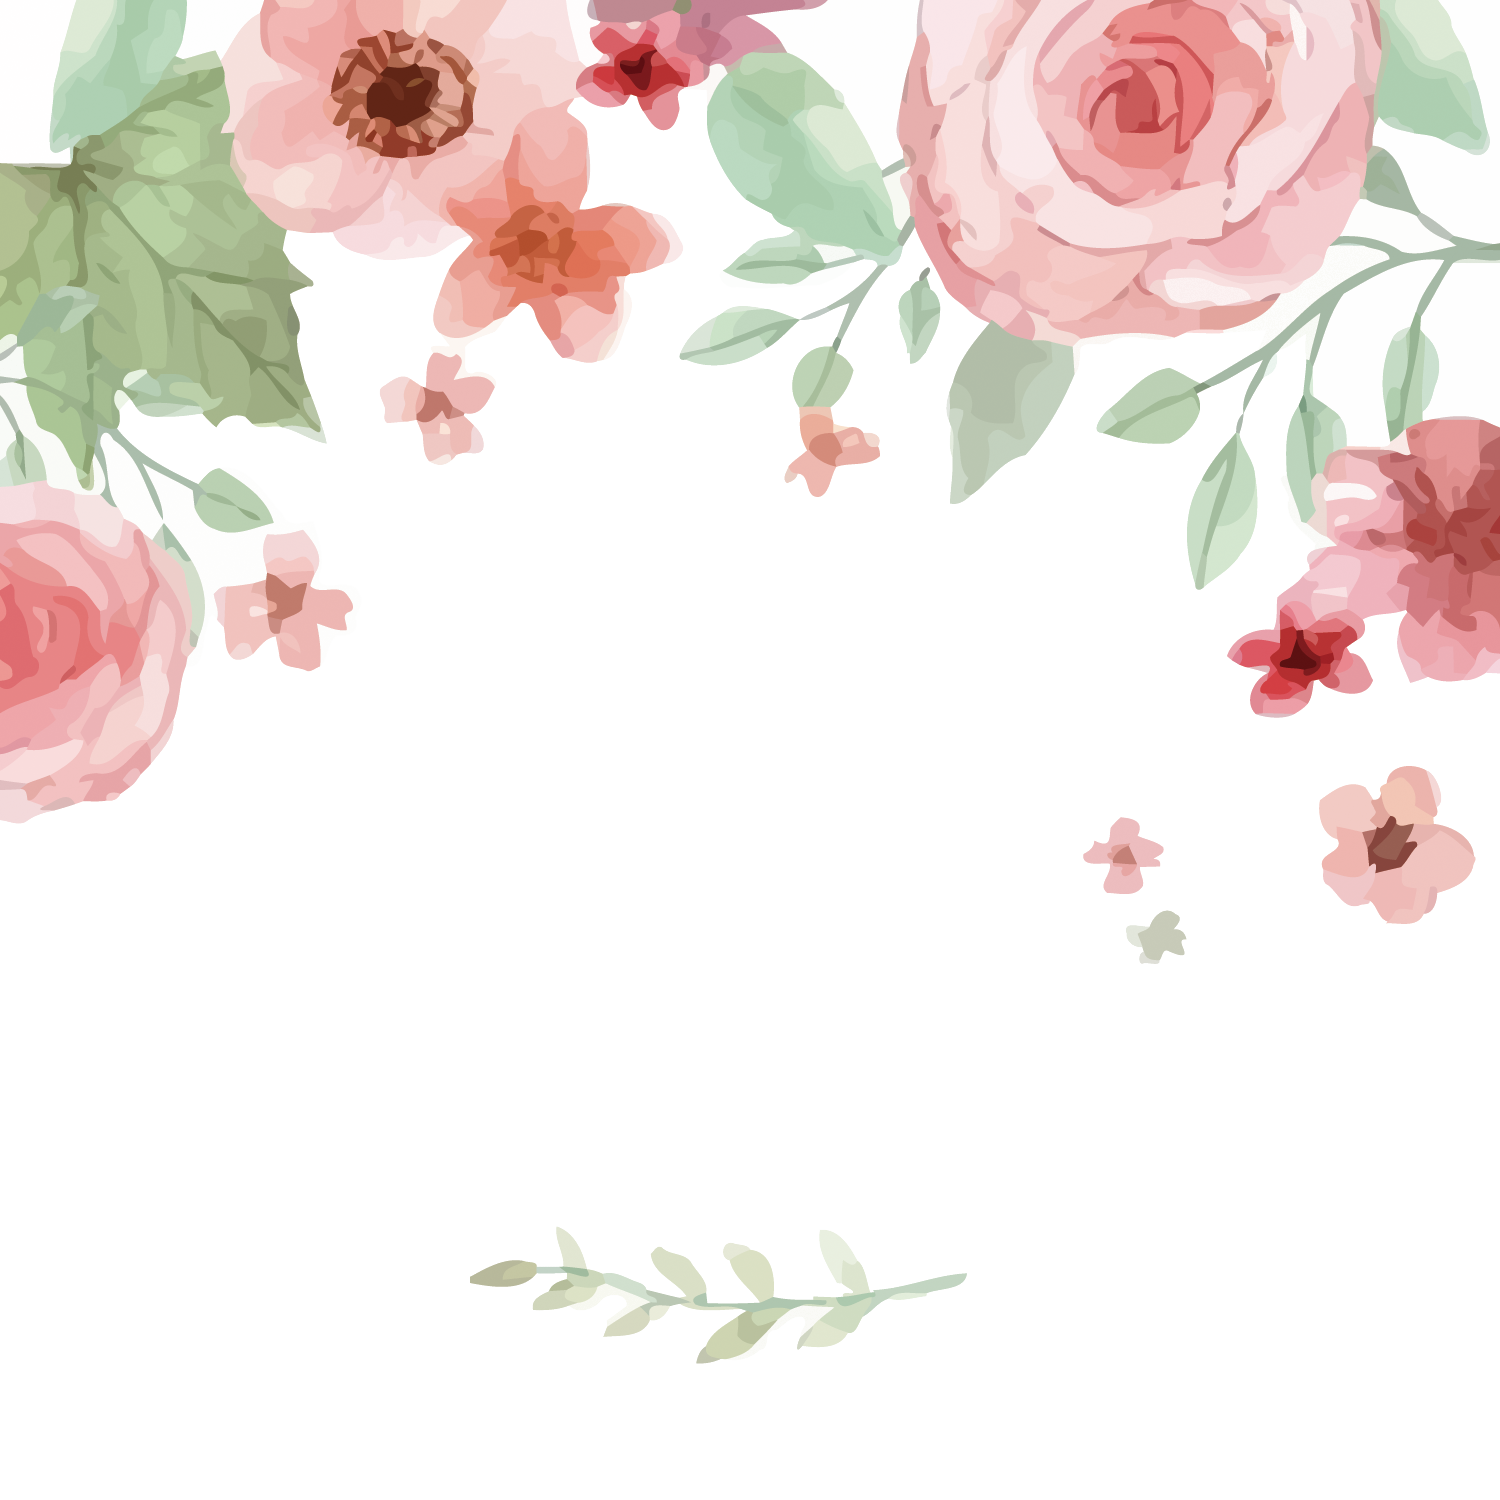 Watercolor Flowers PNG Image Free Download SVG Clip arts